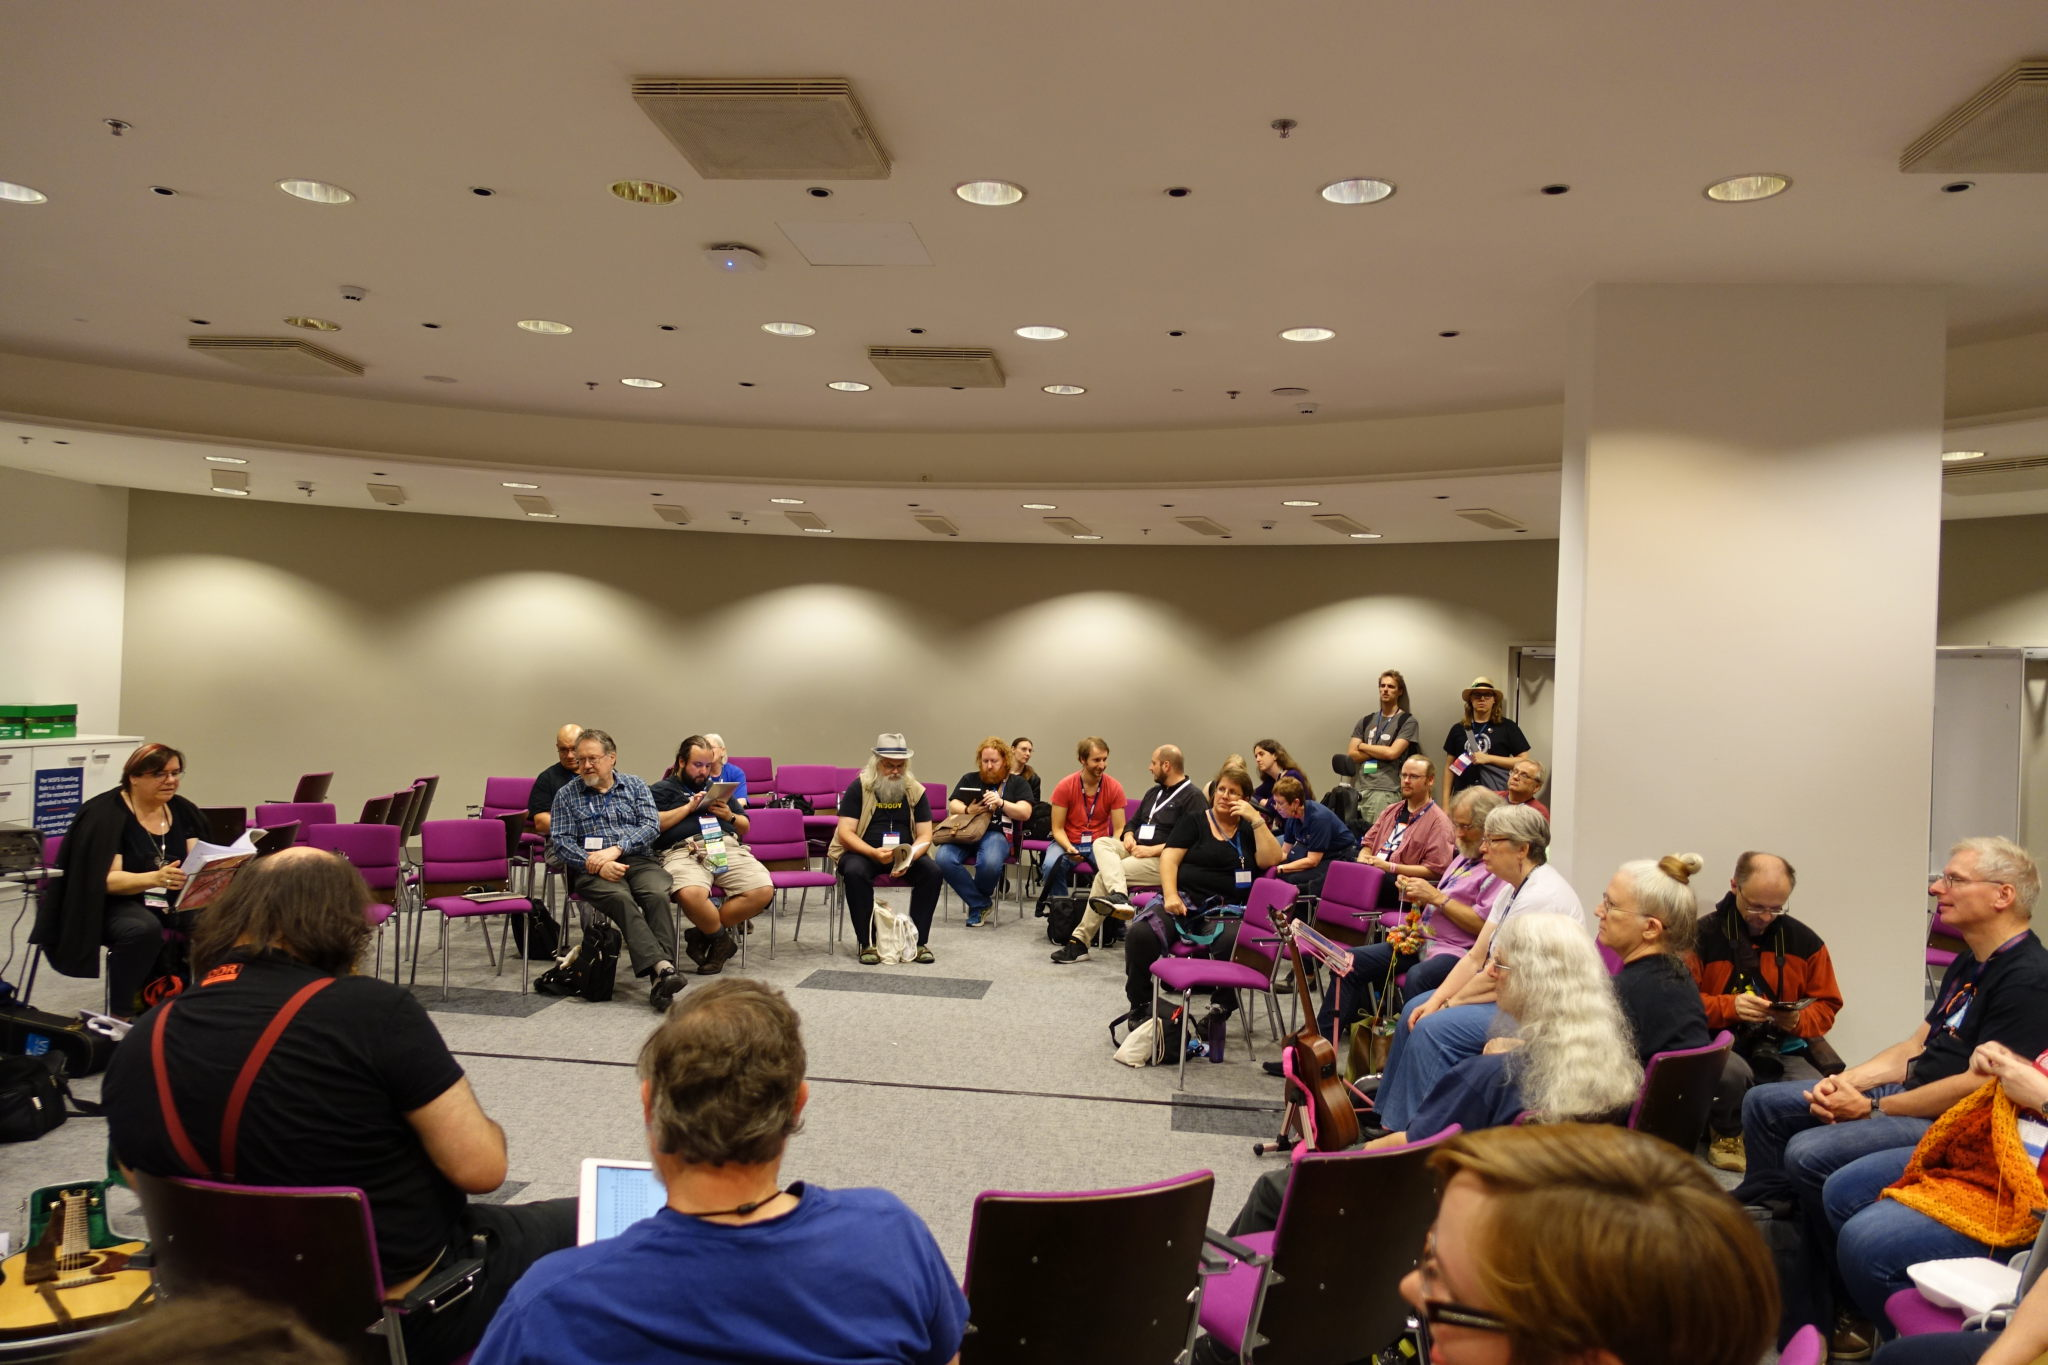 One of the Worldcon 75 Filk circles